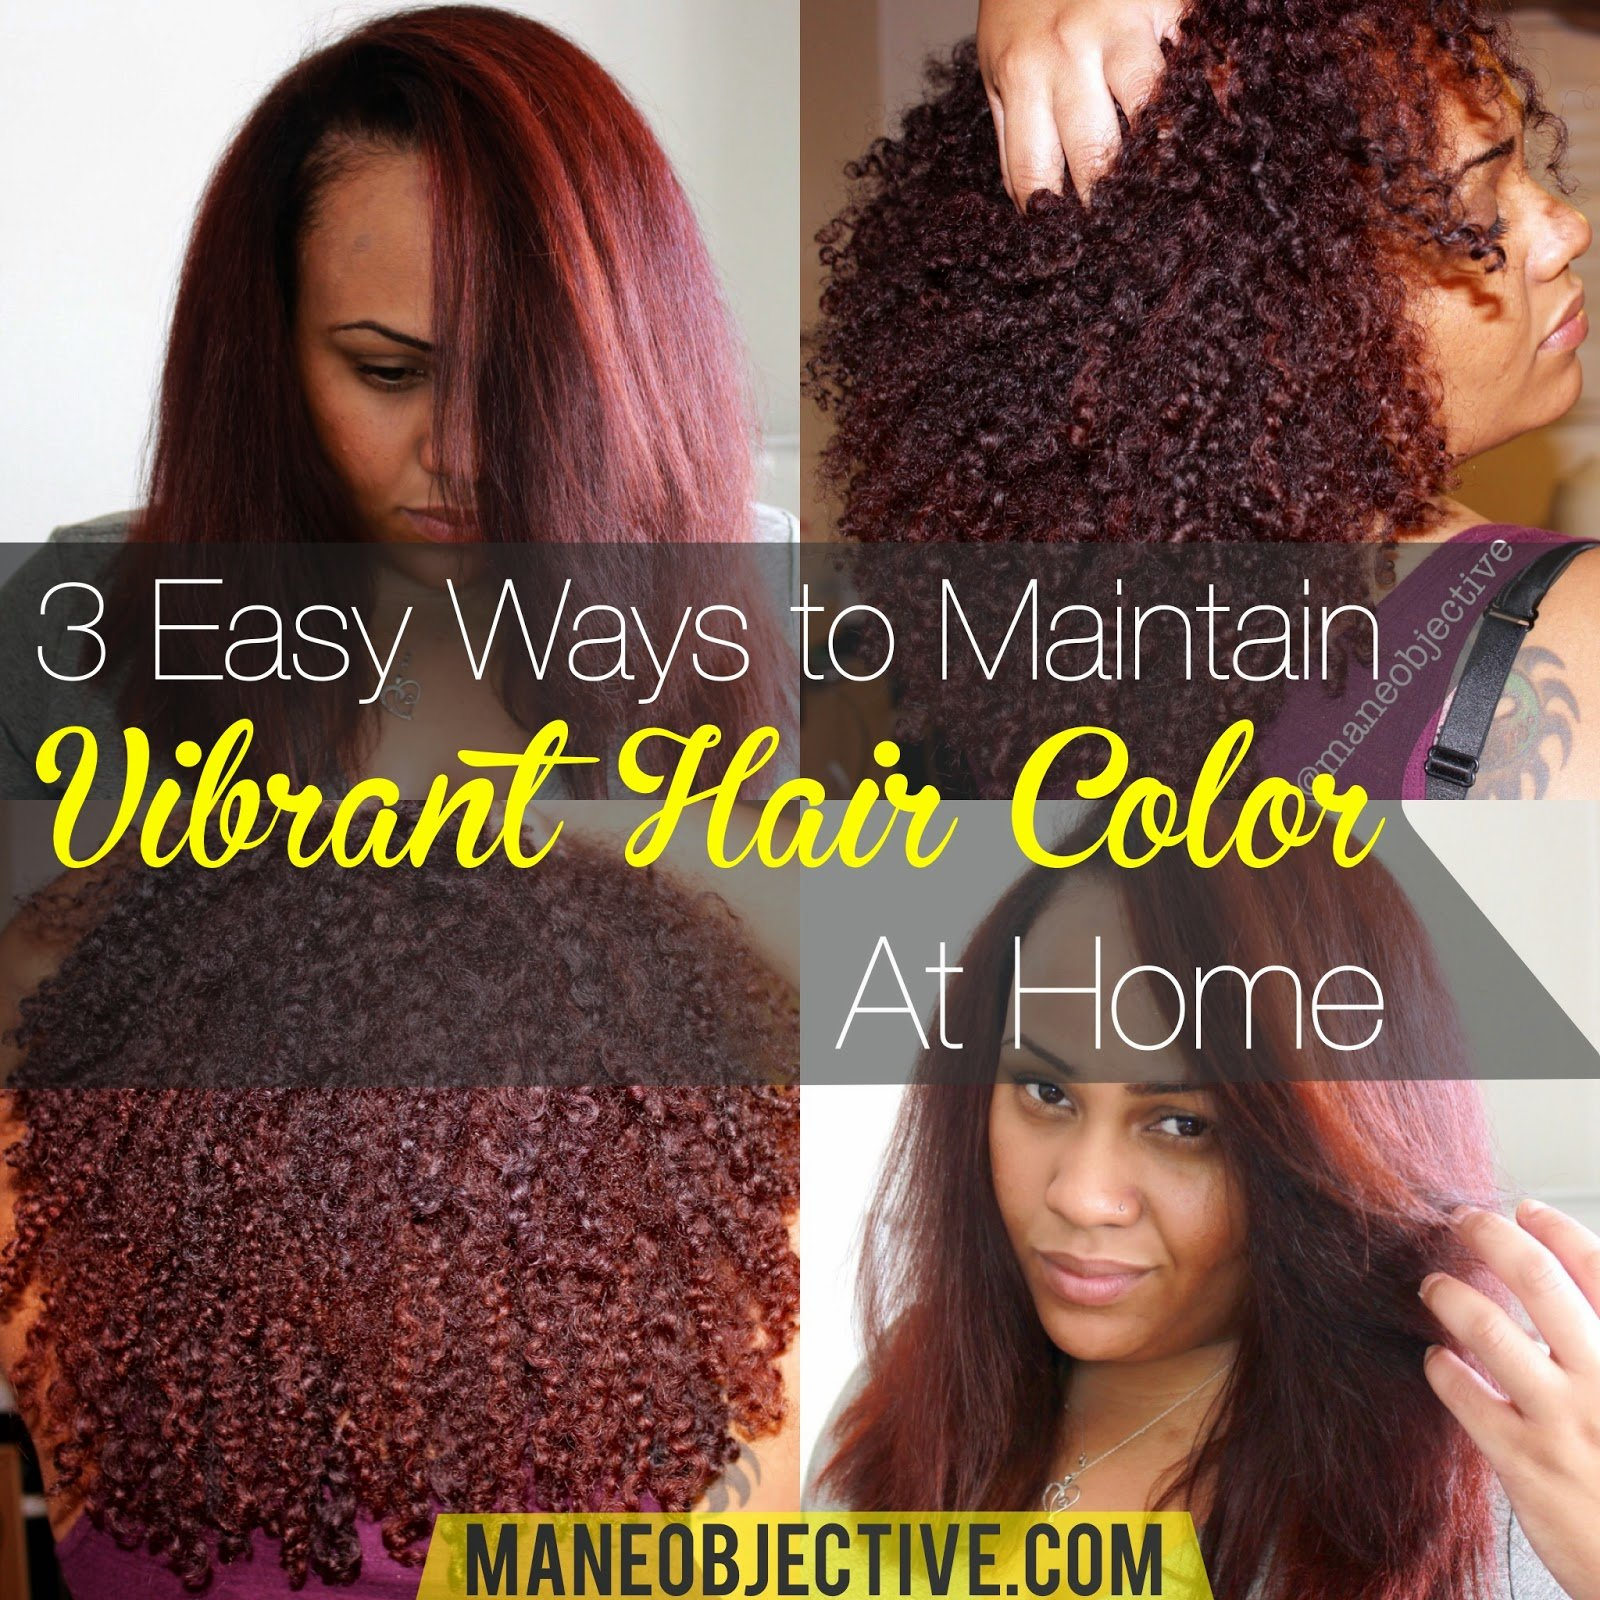 Free The Mane Objective 3 Easy Ways To Maintain Vibrant Hair Wallpaper